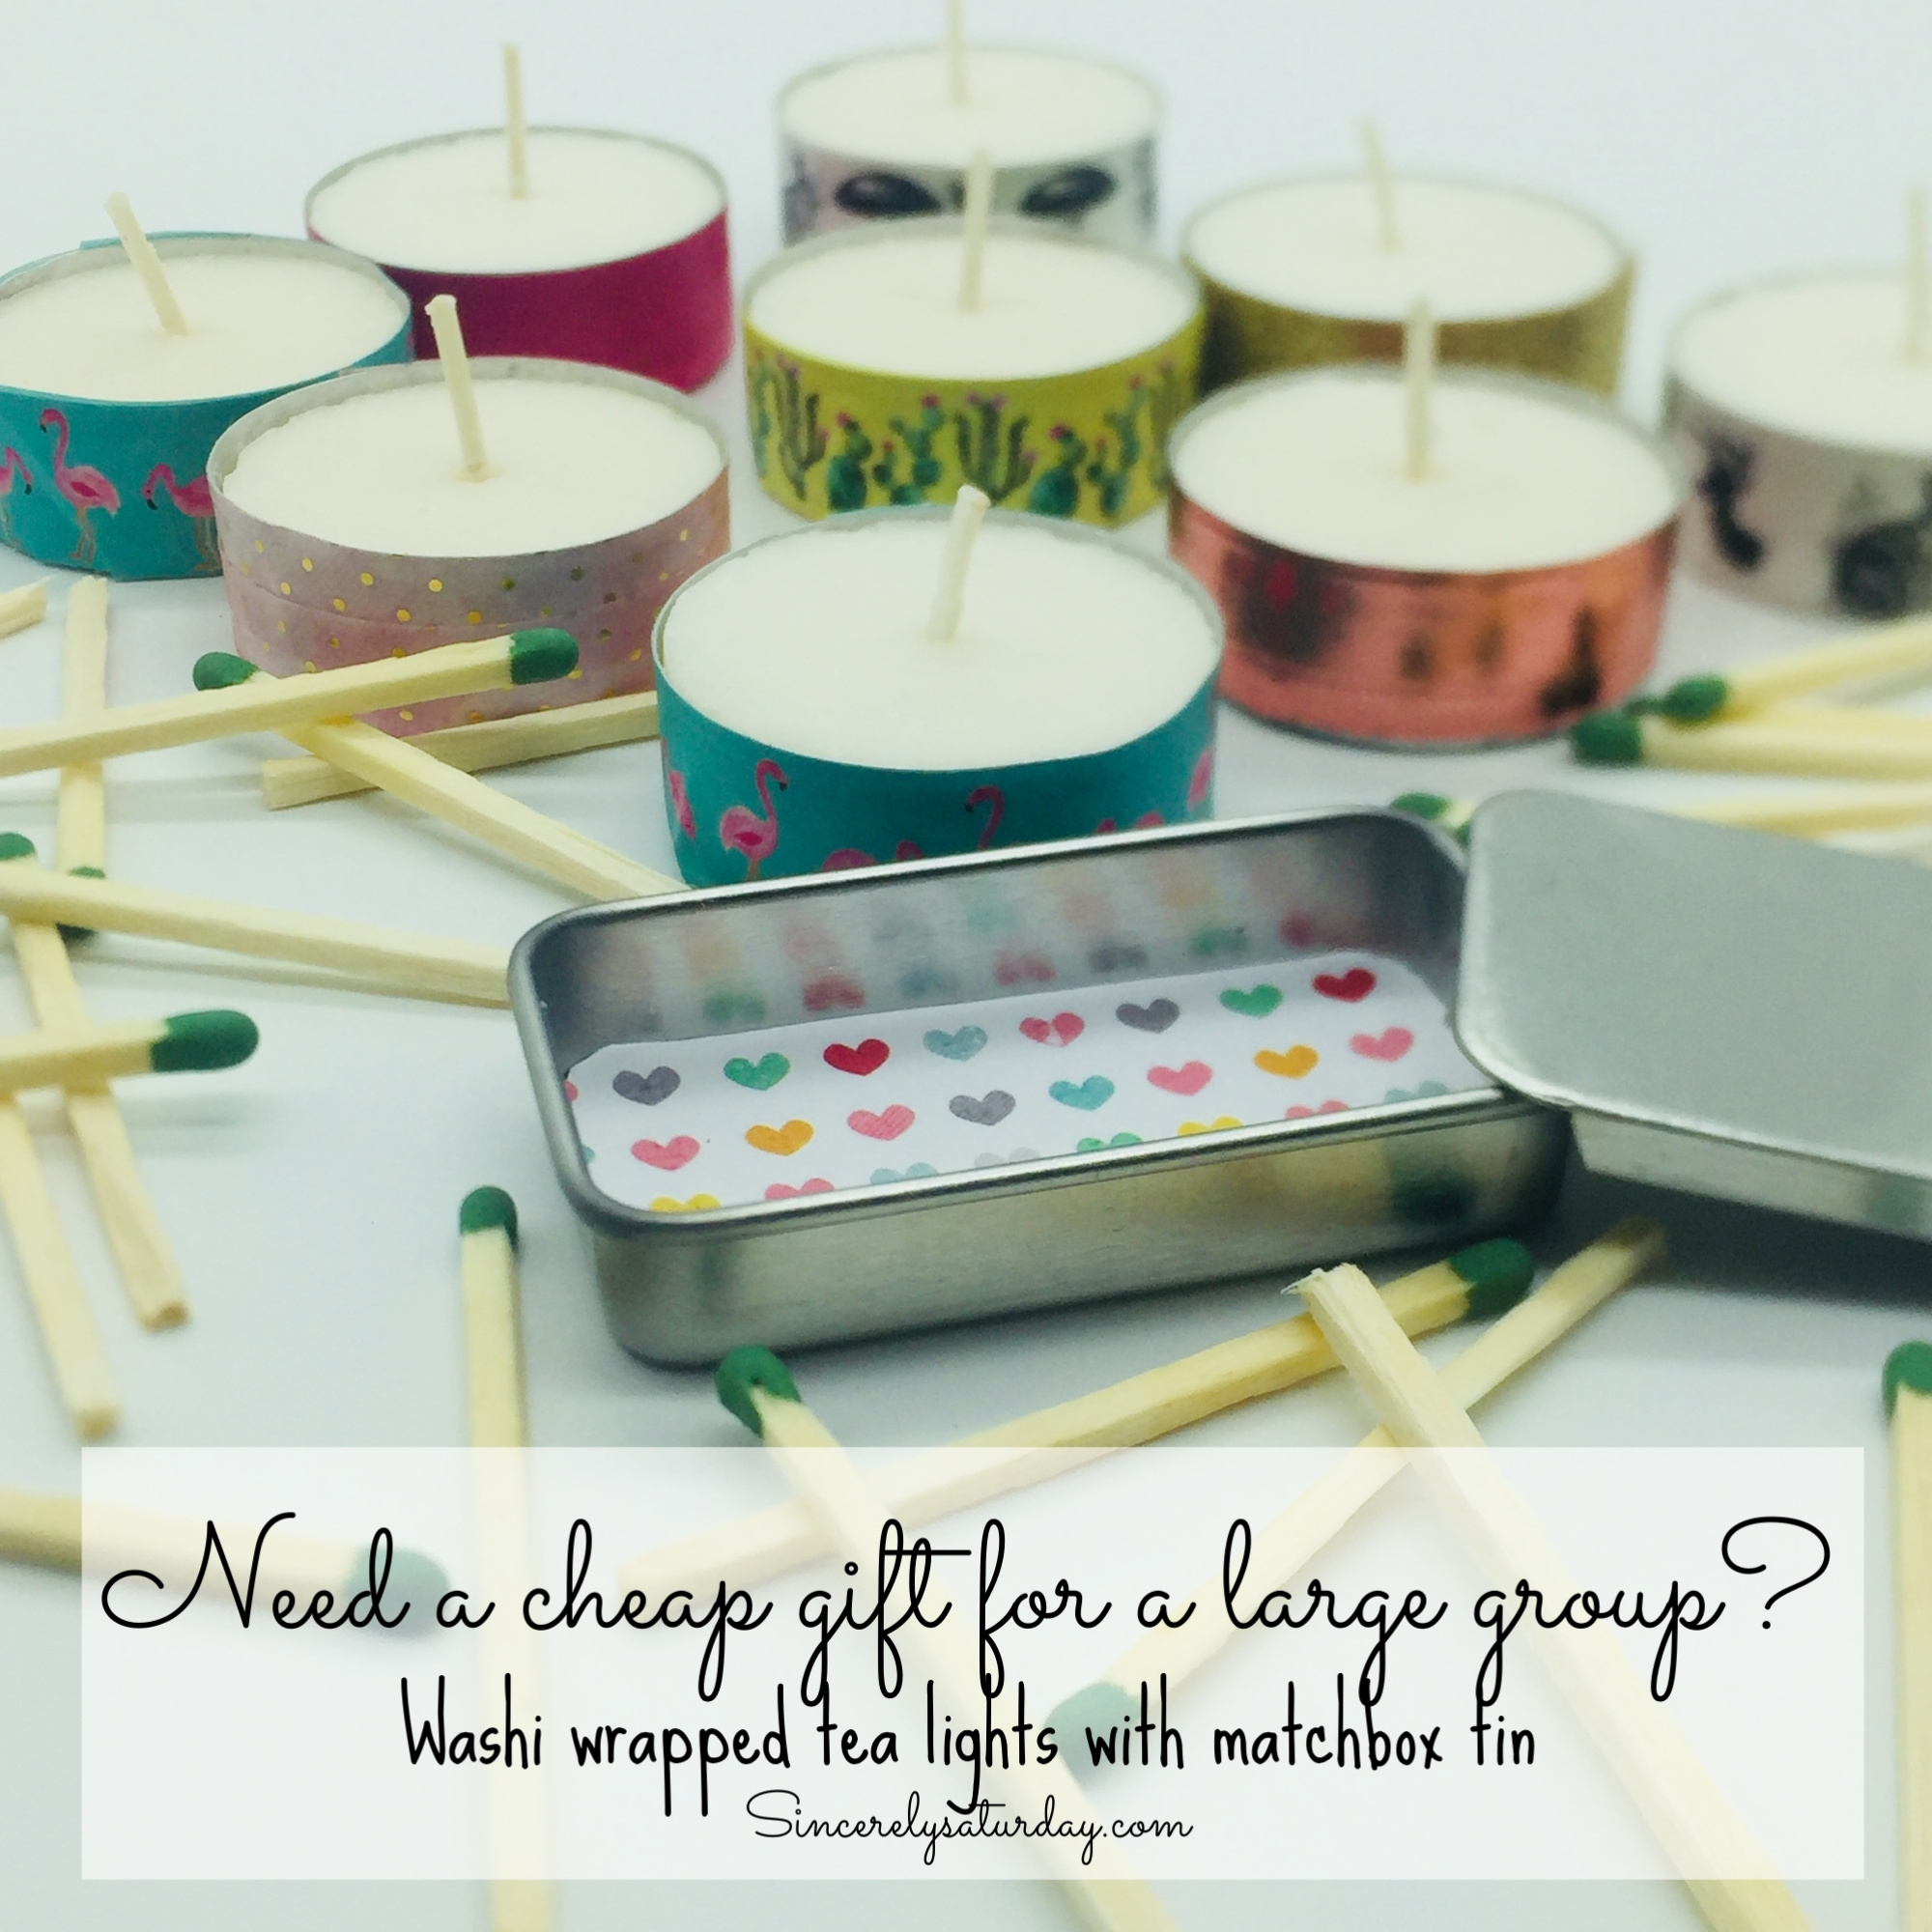 Affordable gifts for large groups